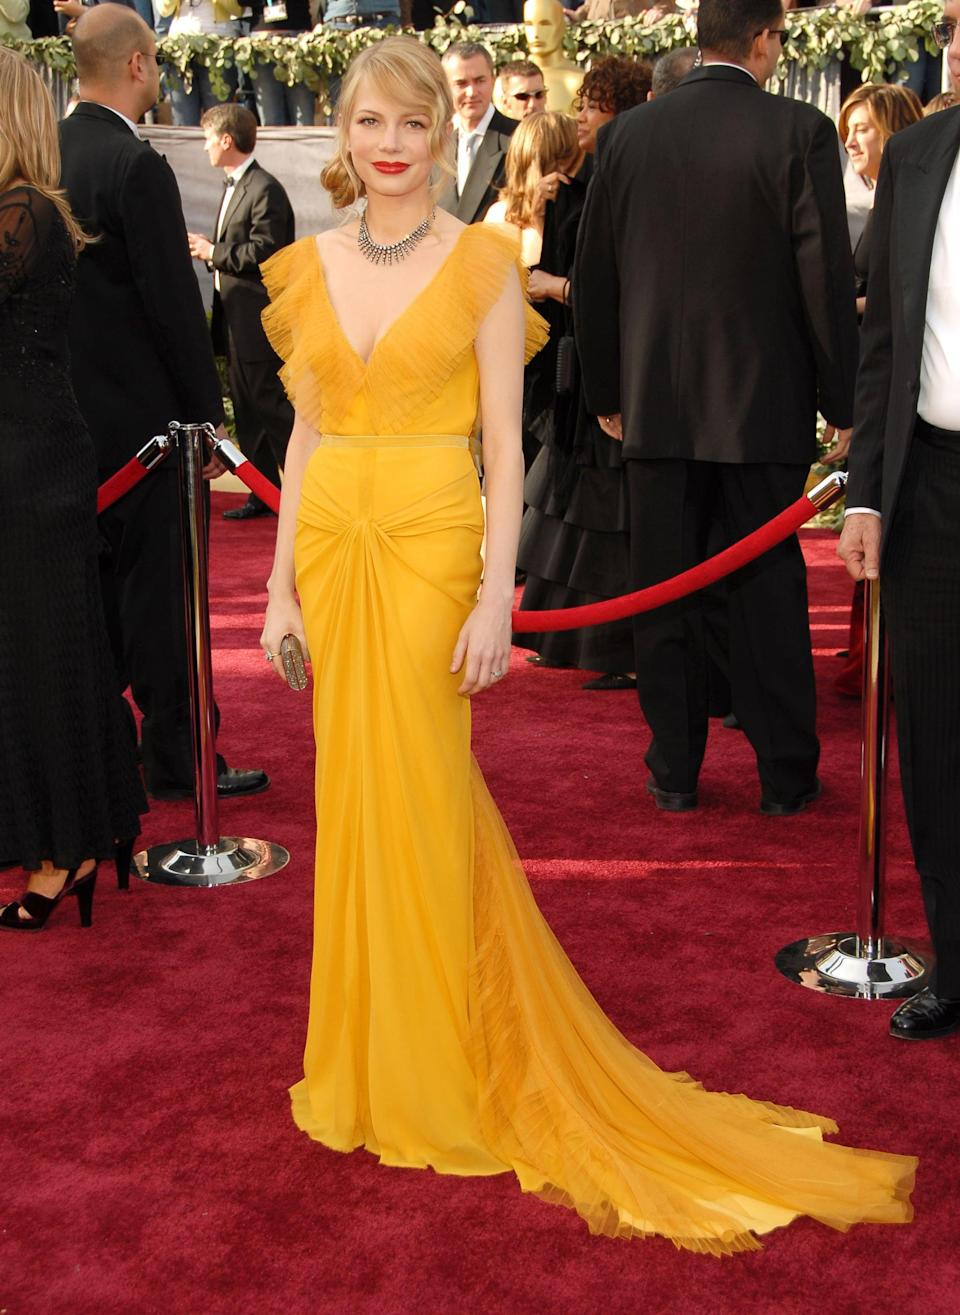 <p>Vera Wang designed the sunny yellow dress Michelle chose for the red carpet in 2006.</p>